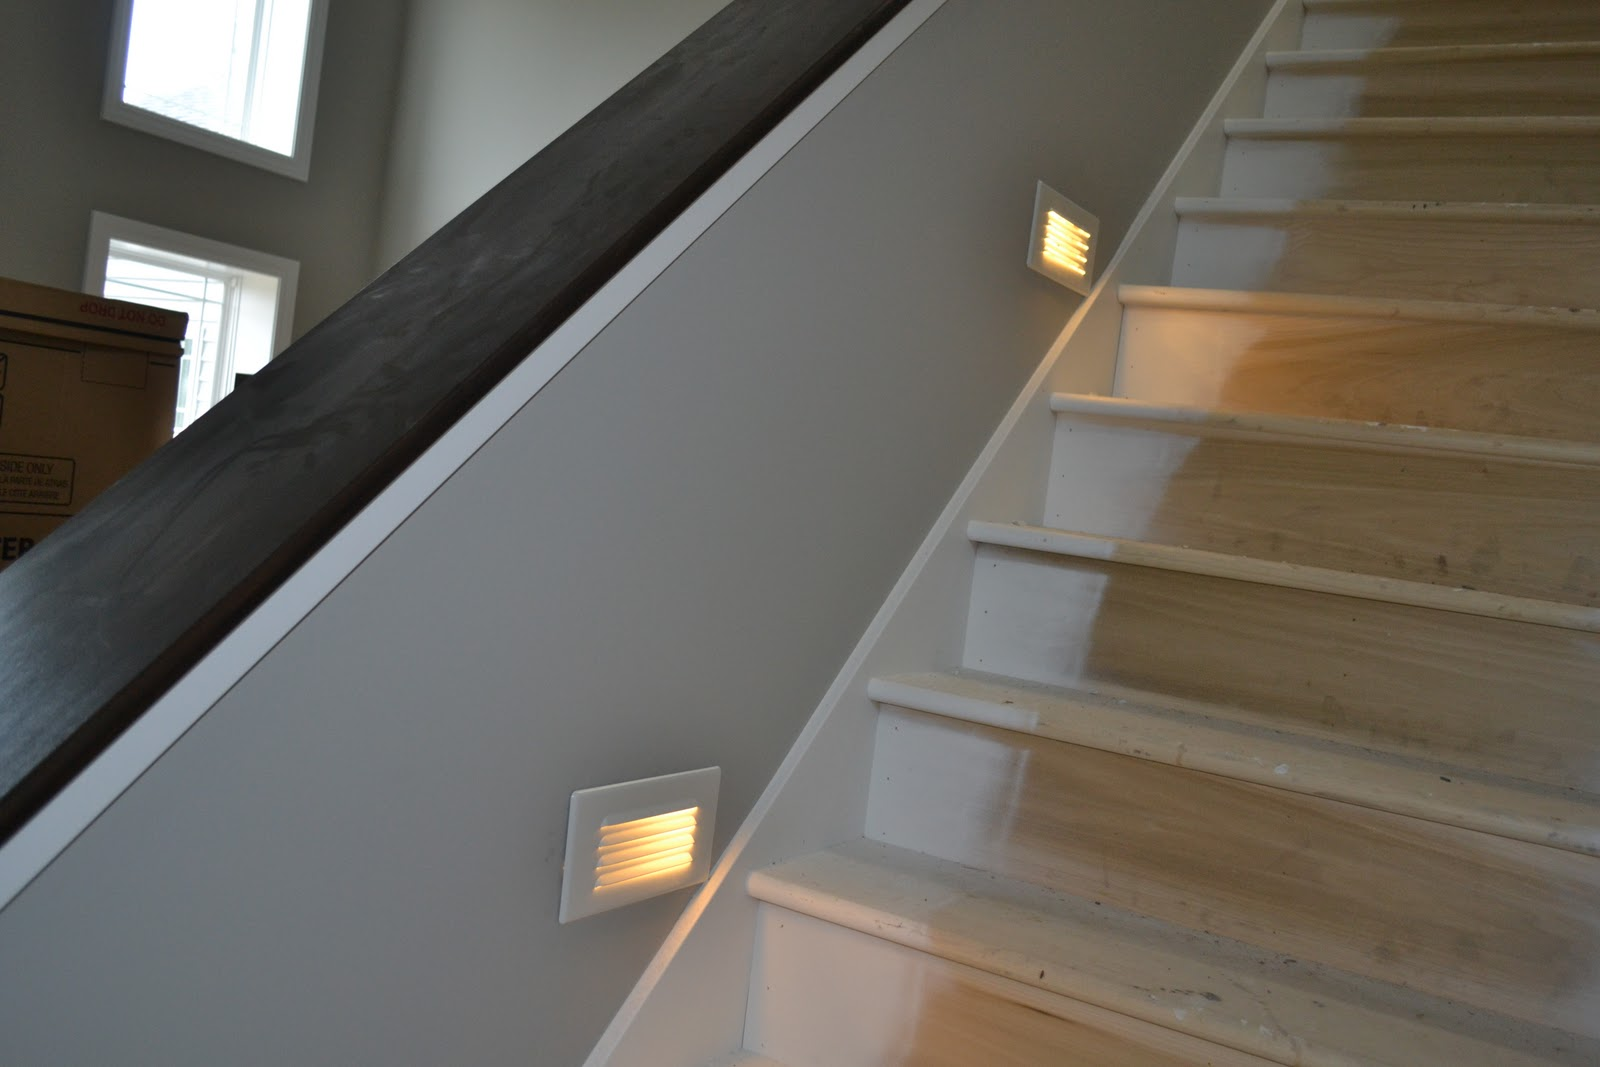 our stair lights have been installed these will be very nice when my